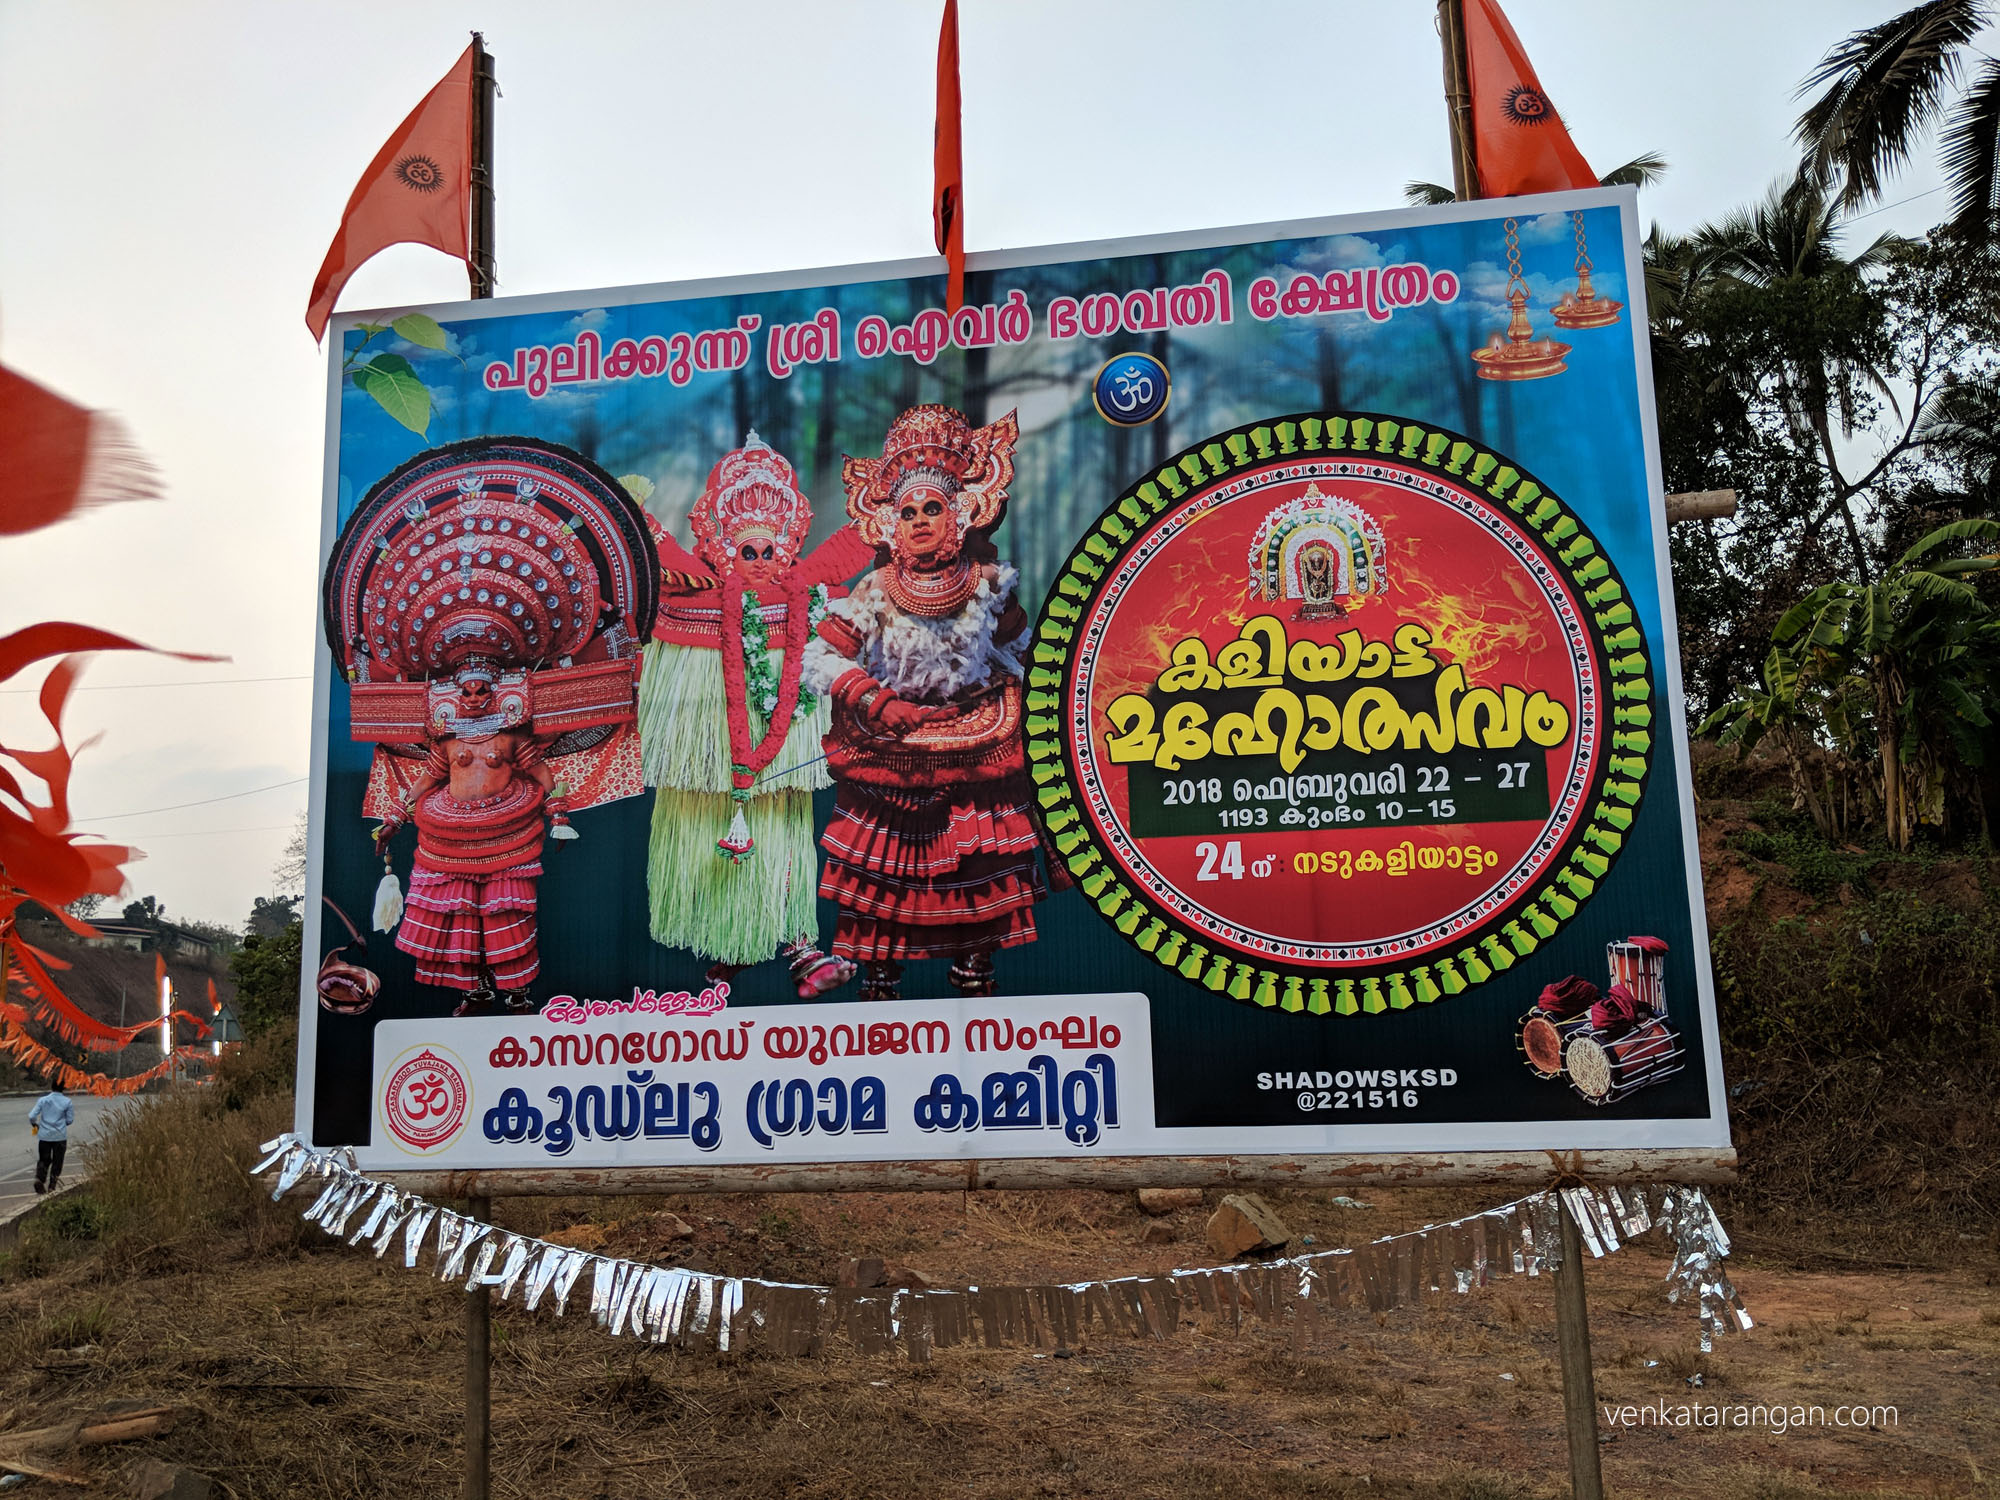 A poster on Kaliyattam Maha utsavum at Pulikkunnu, 22-27 February 2018